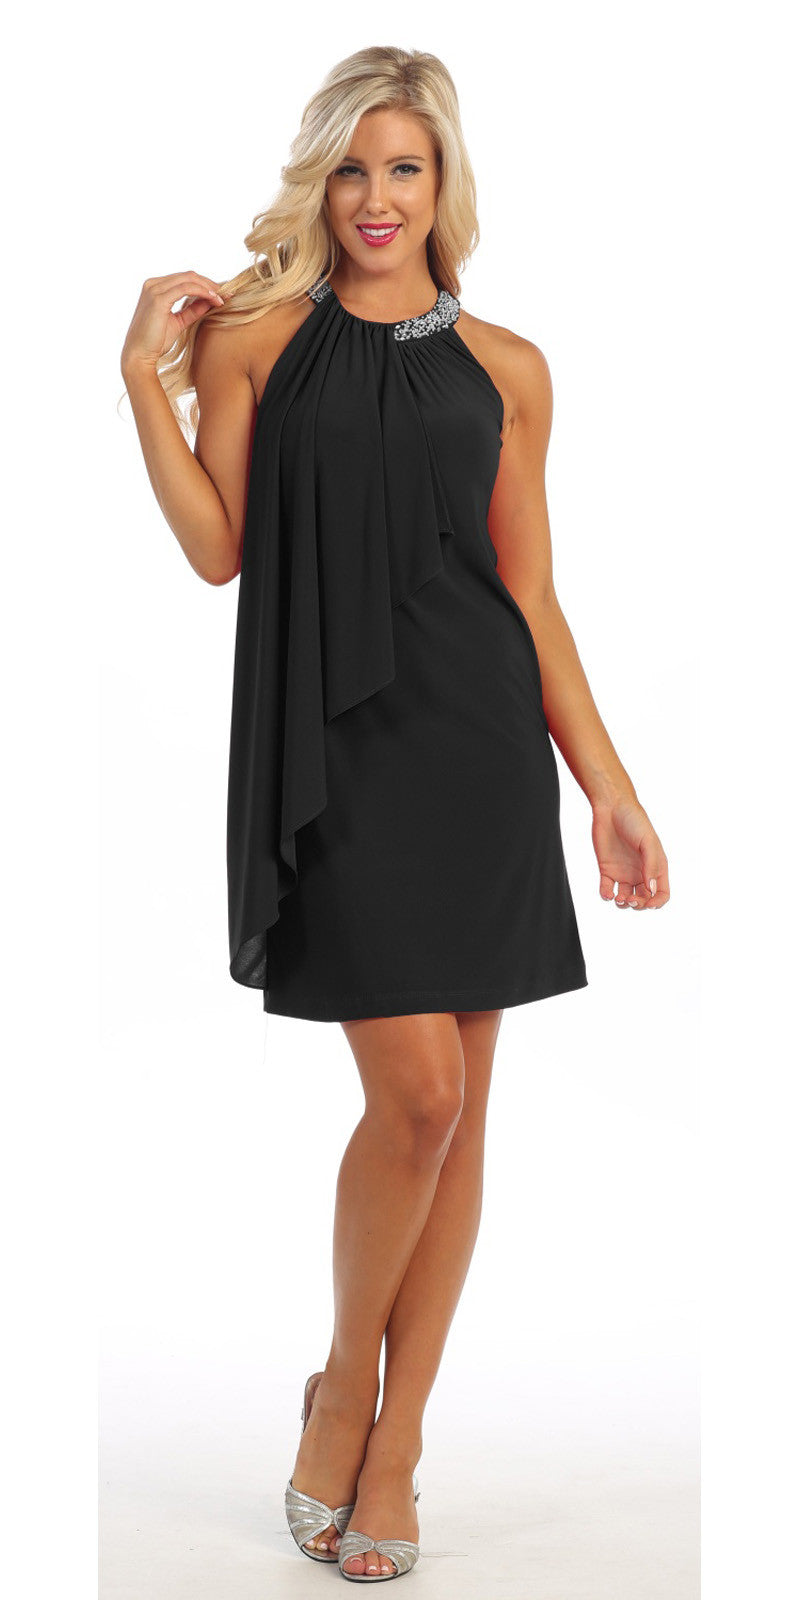 Halter Cocktail Dress Black Short Rhinestone Neckline Draped